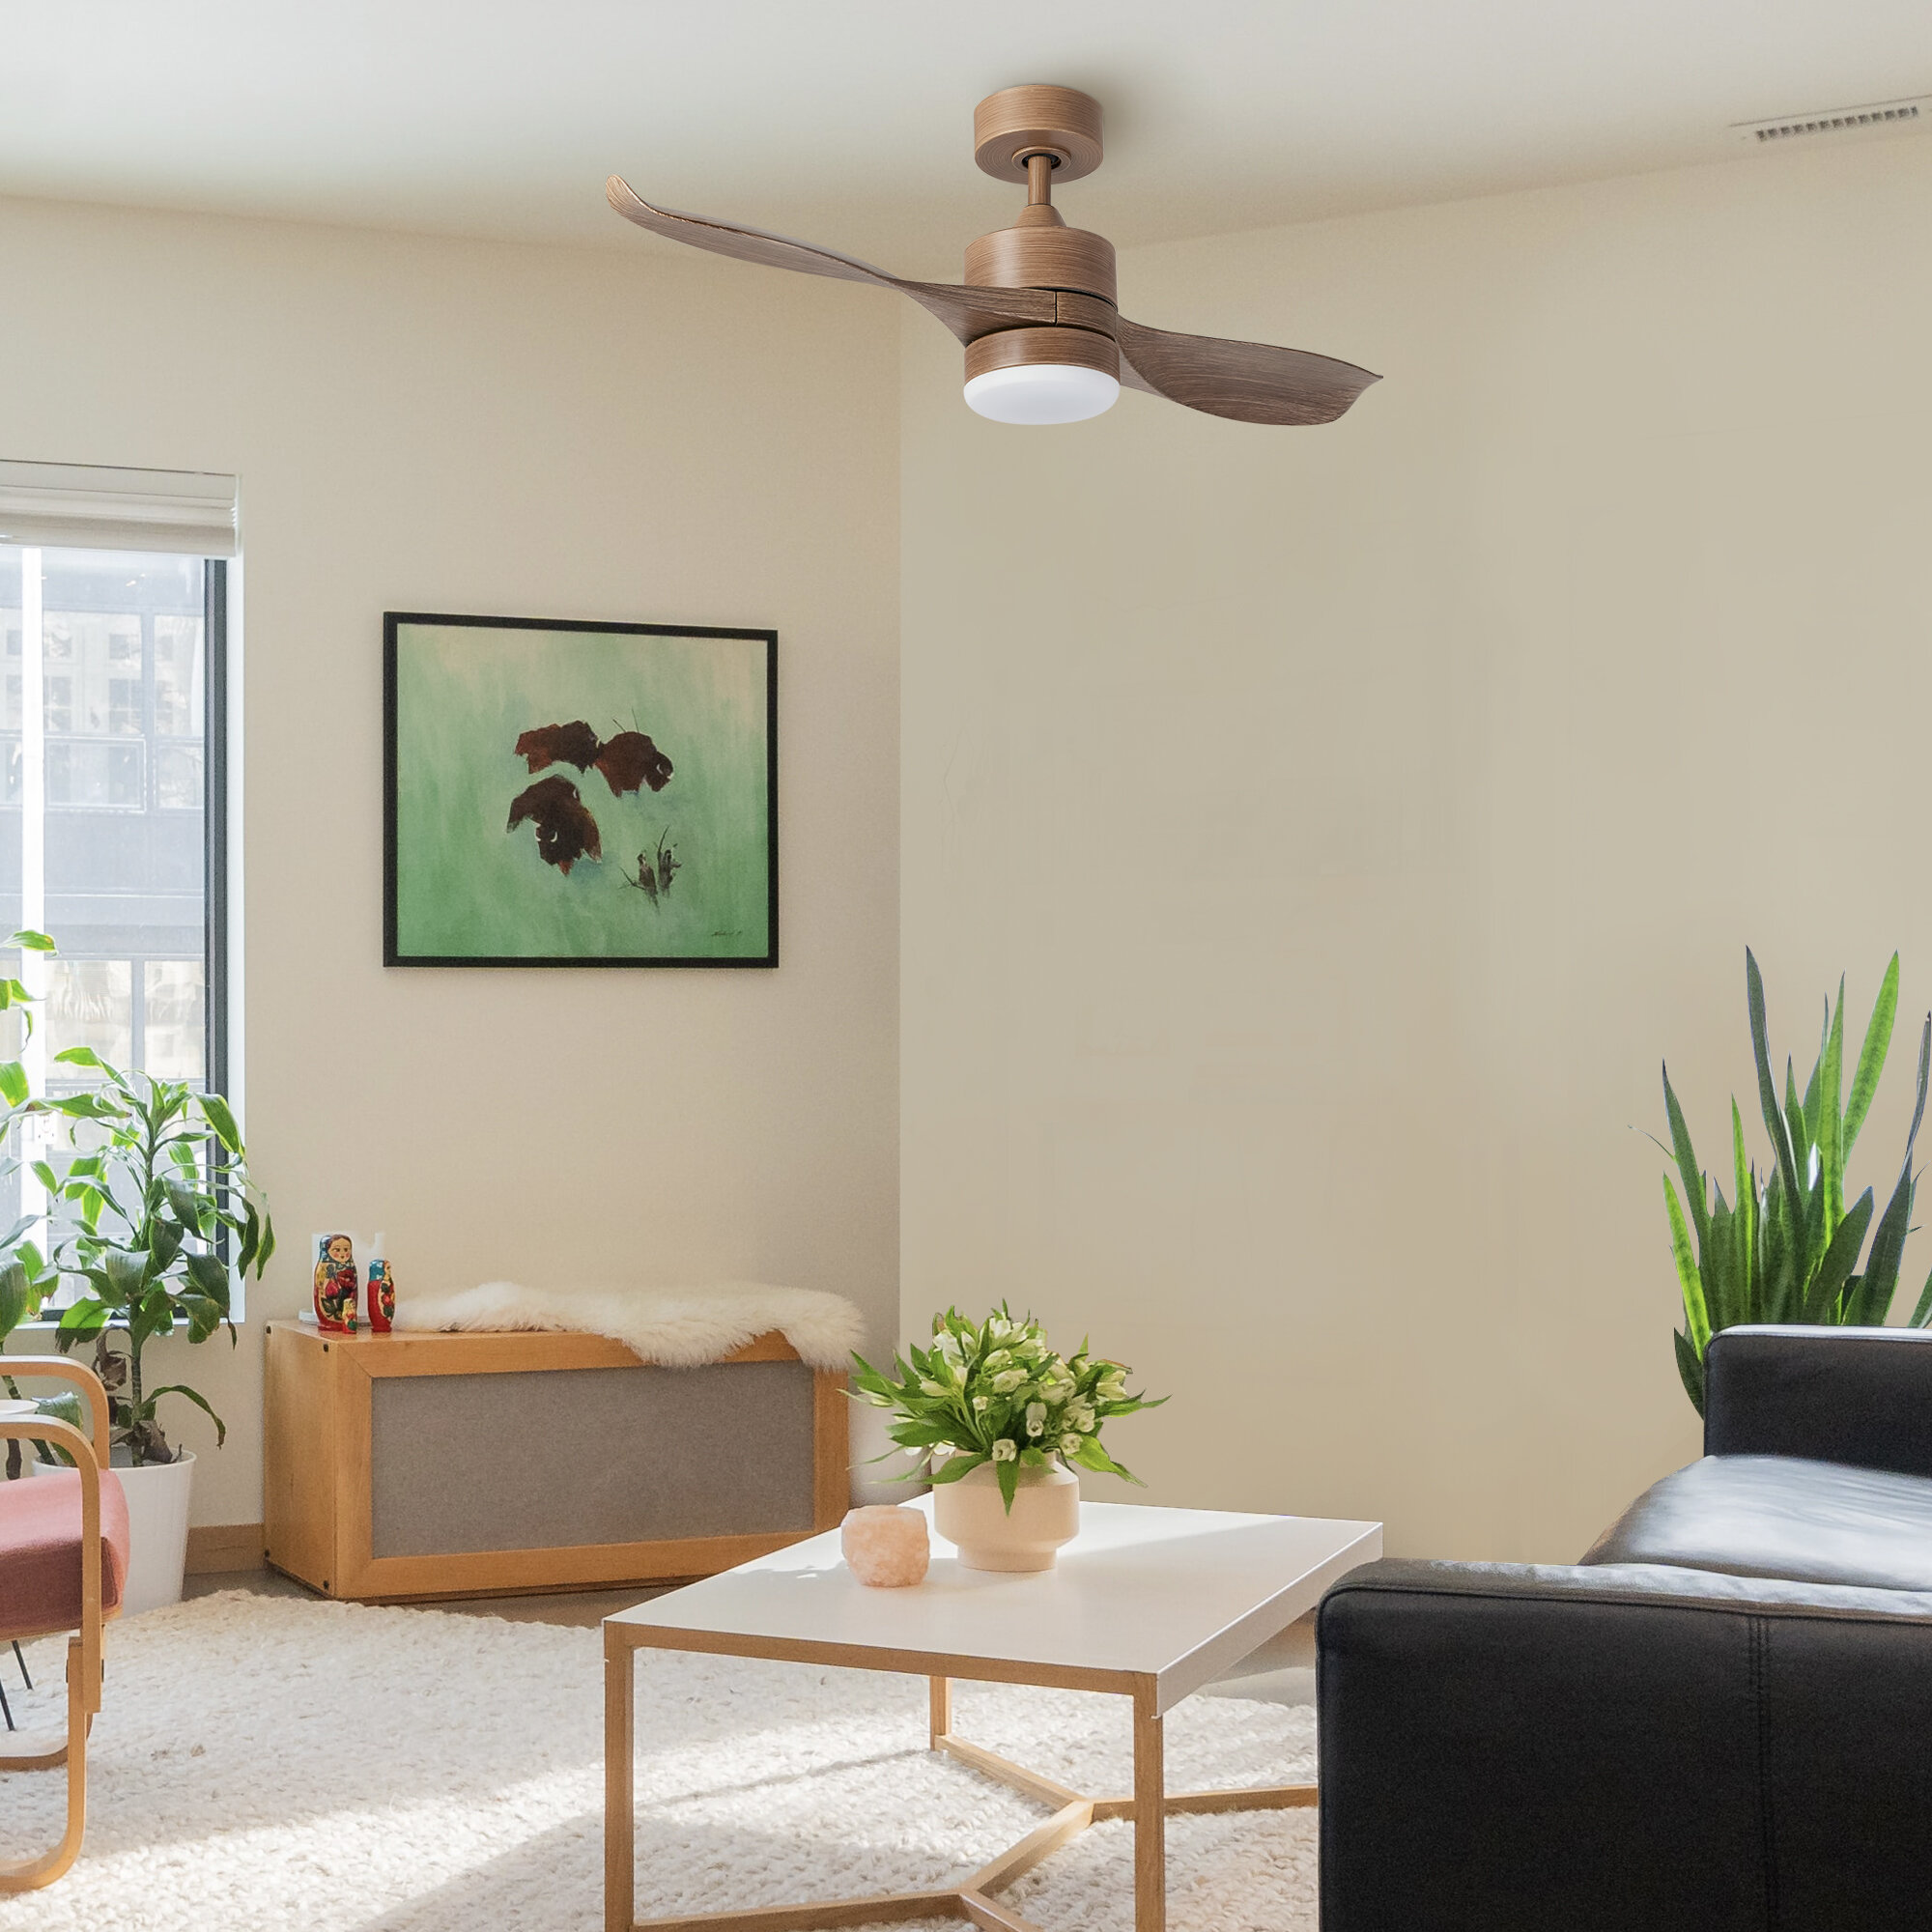 George Oliver 42 Jaclyn Led Standard Ceiling Fan With Remote Control And Light Kit Included Wayfair